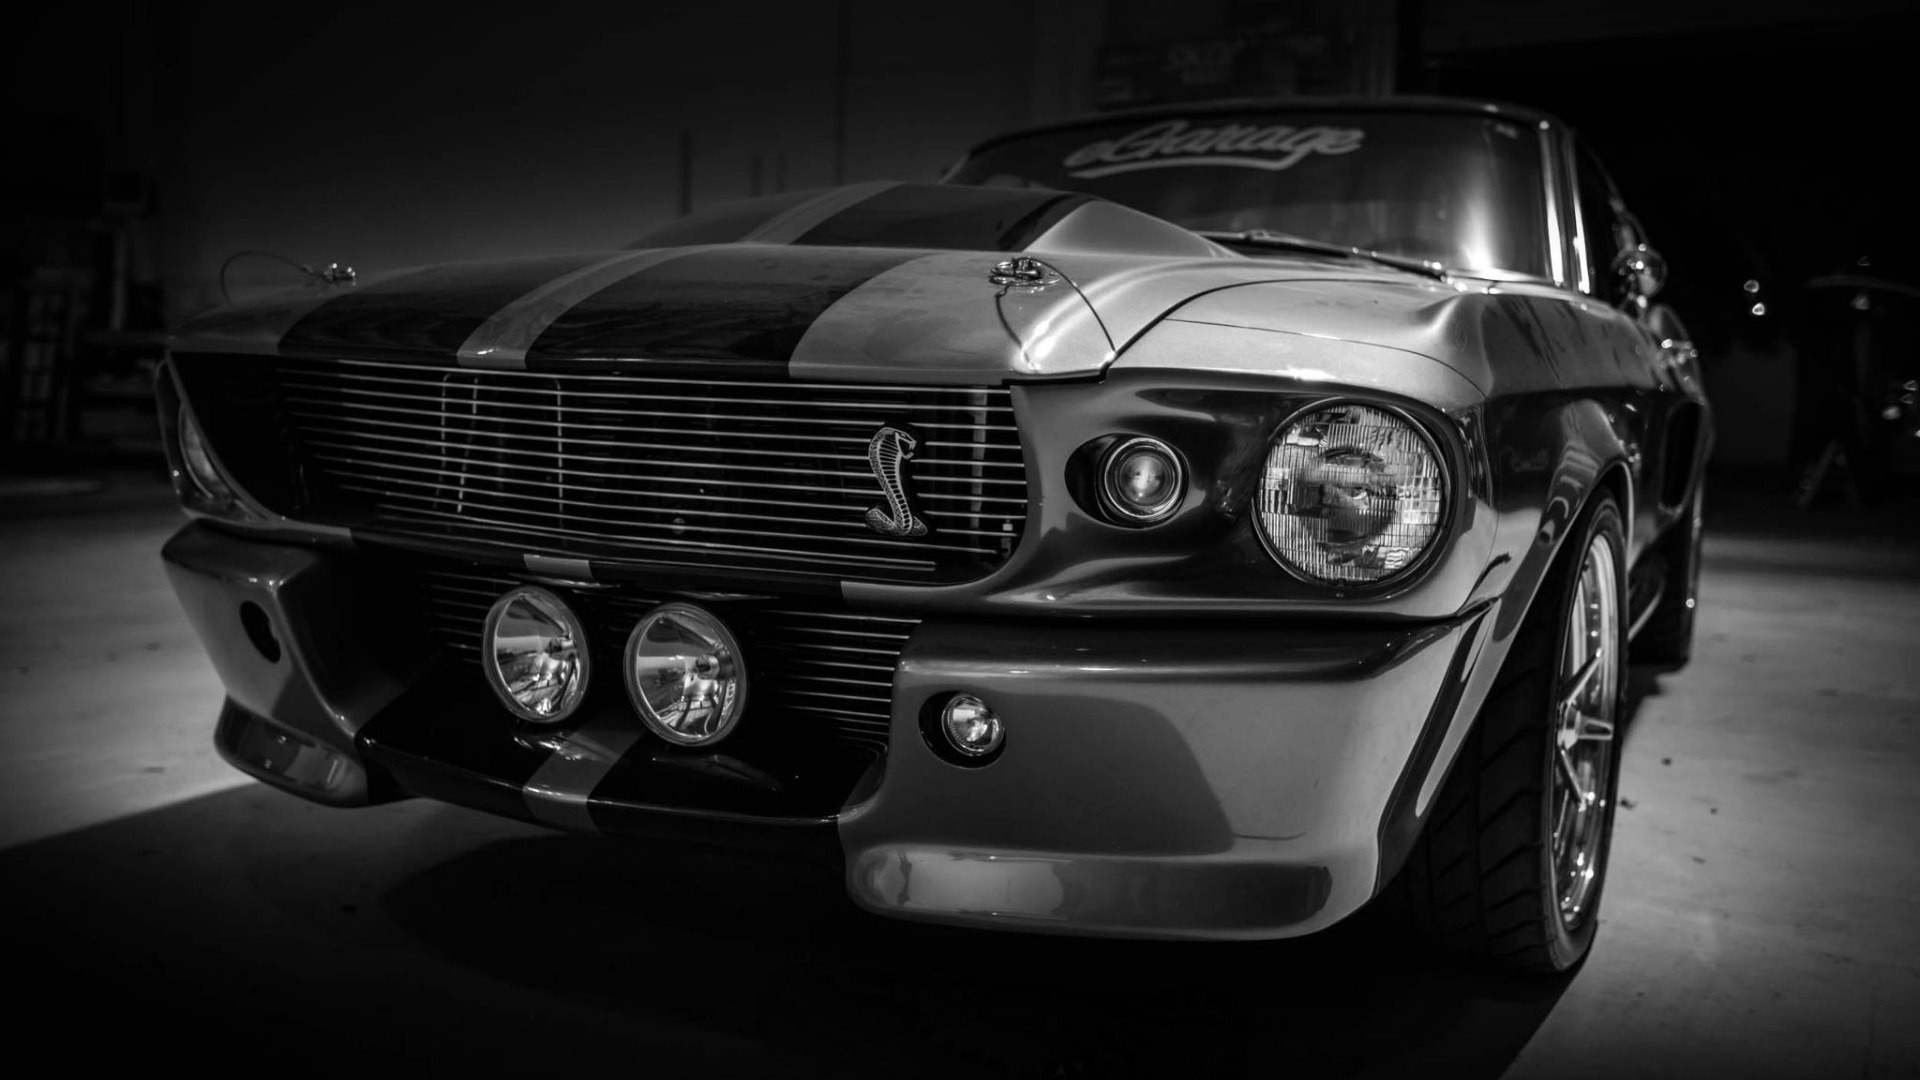 Classic Ford Mustang Wallpaper 74 Images 1969 Shelby Gt500 1920x1080 Coupe 104854 Hd Wallpapers